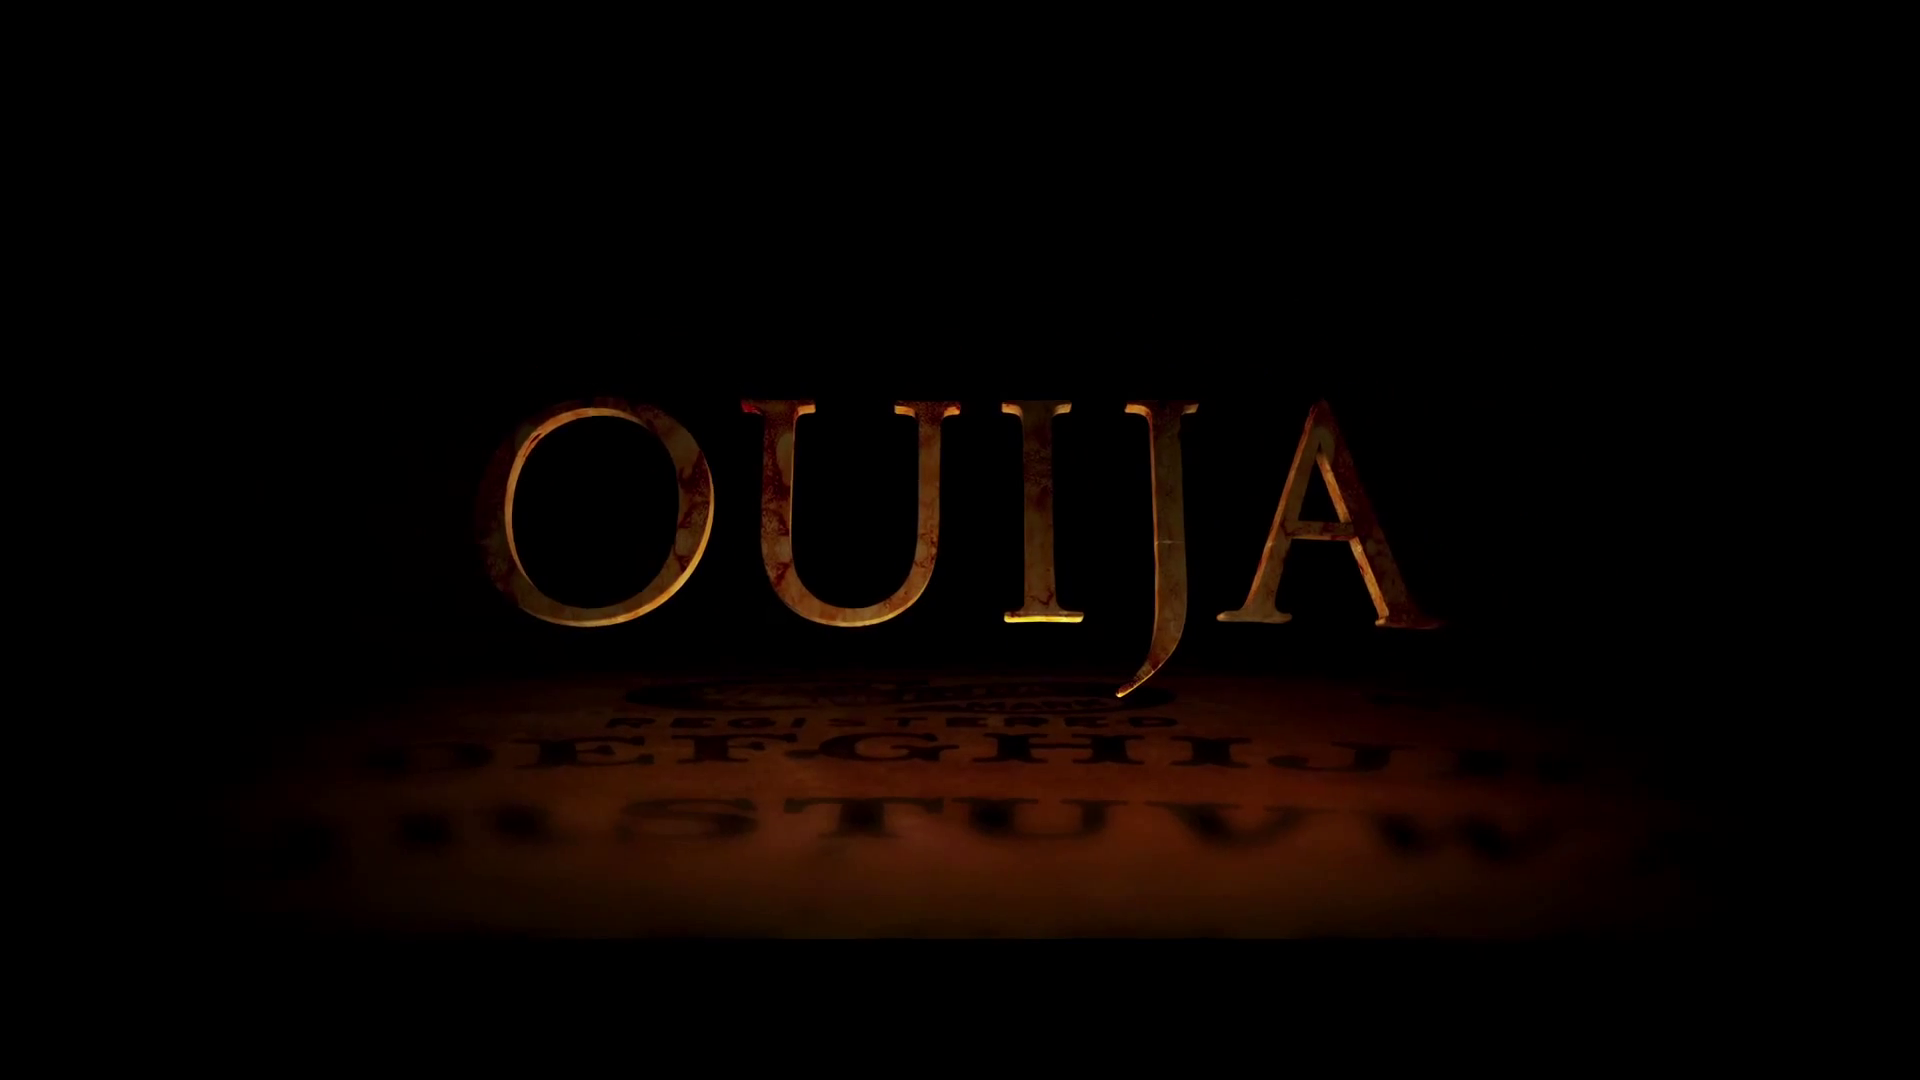 Ouija ecco il trailer italiano ufficiale video crazy for tv series - La tavola ouija film ...